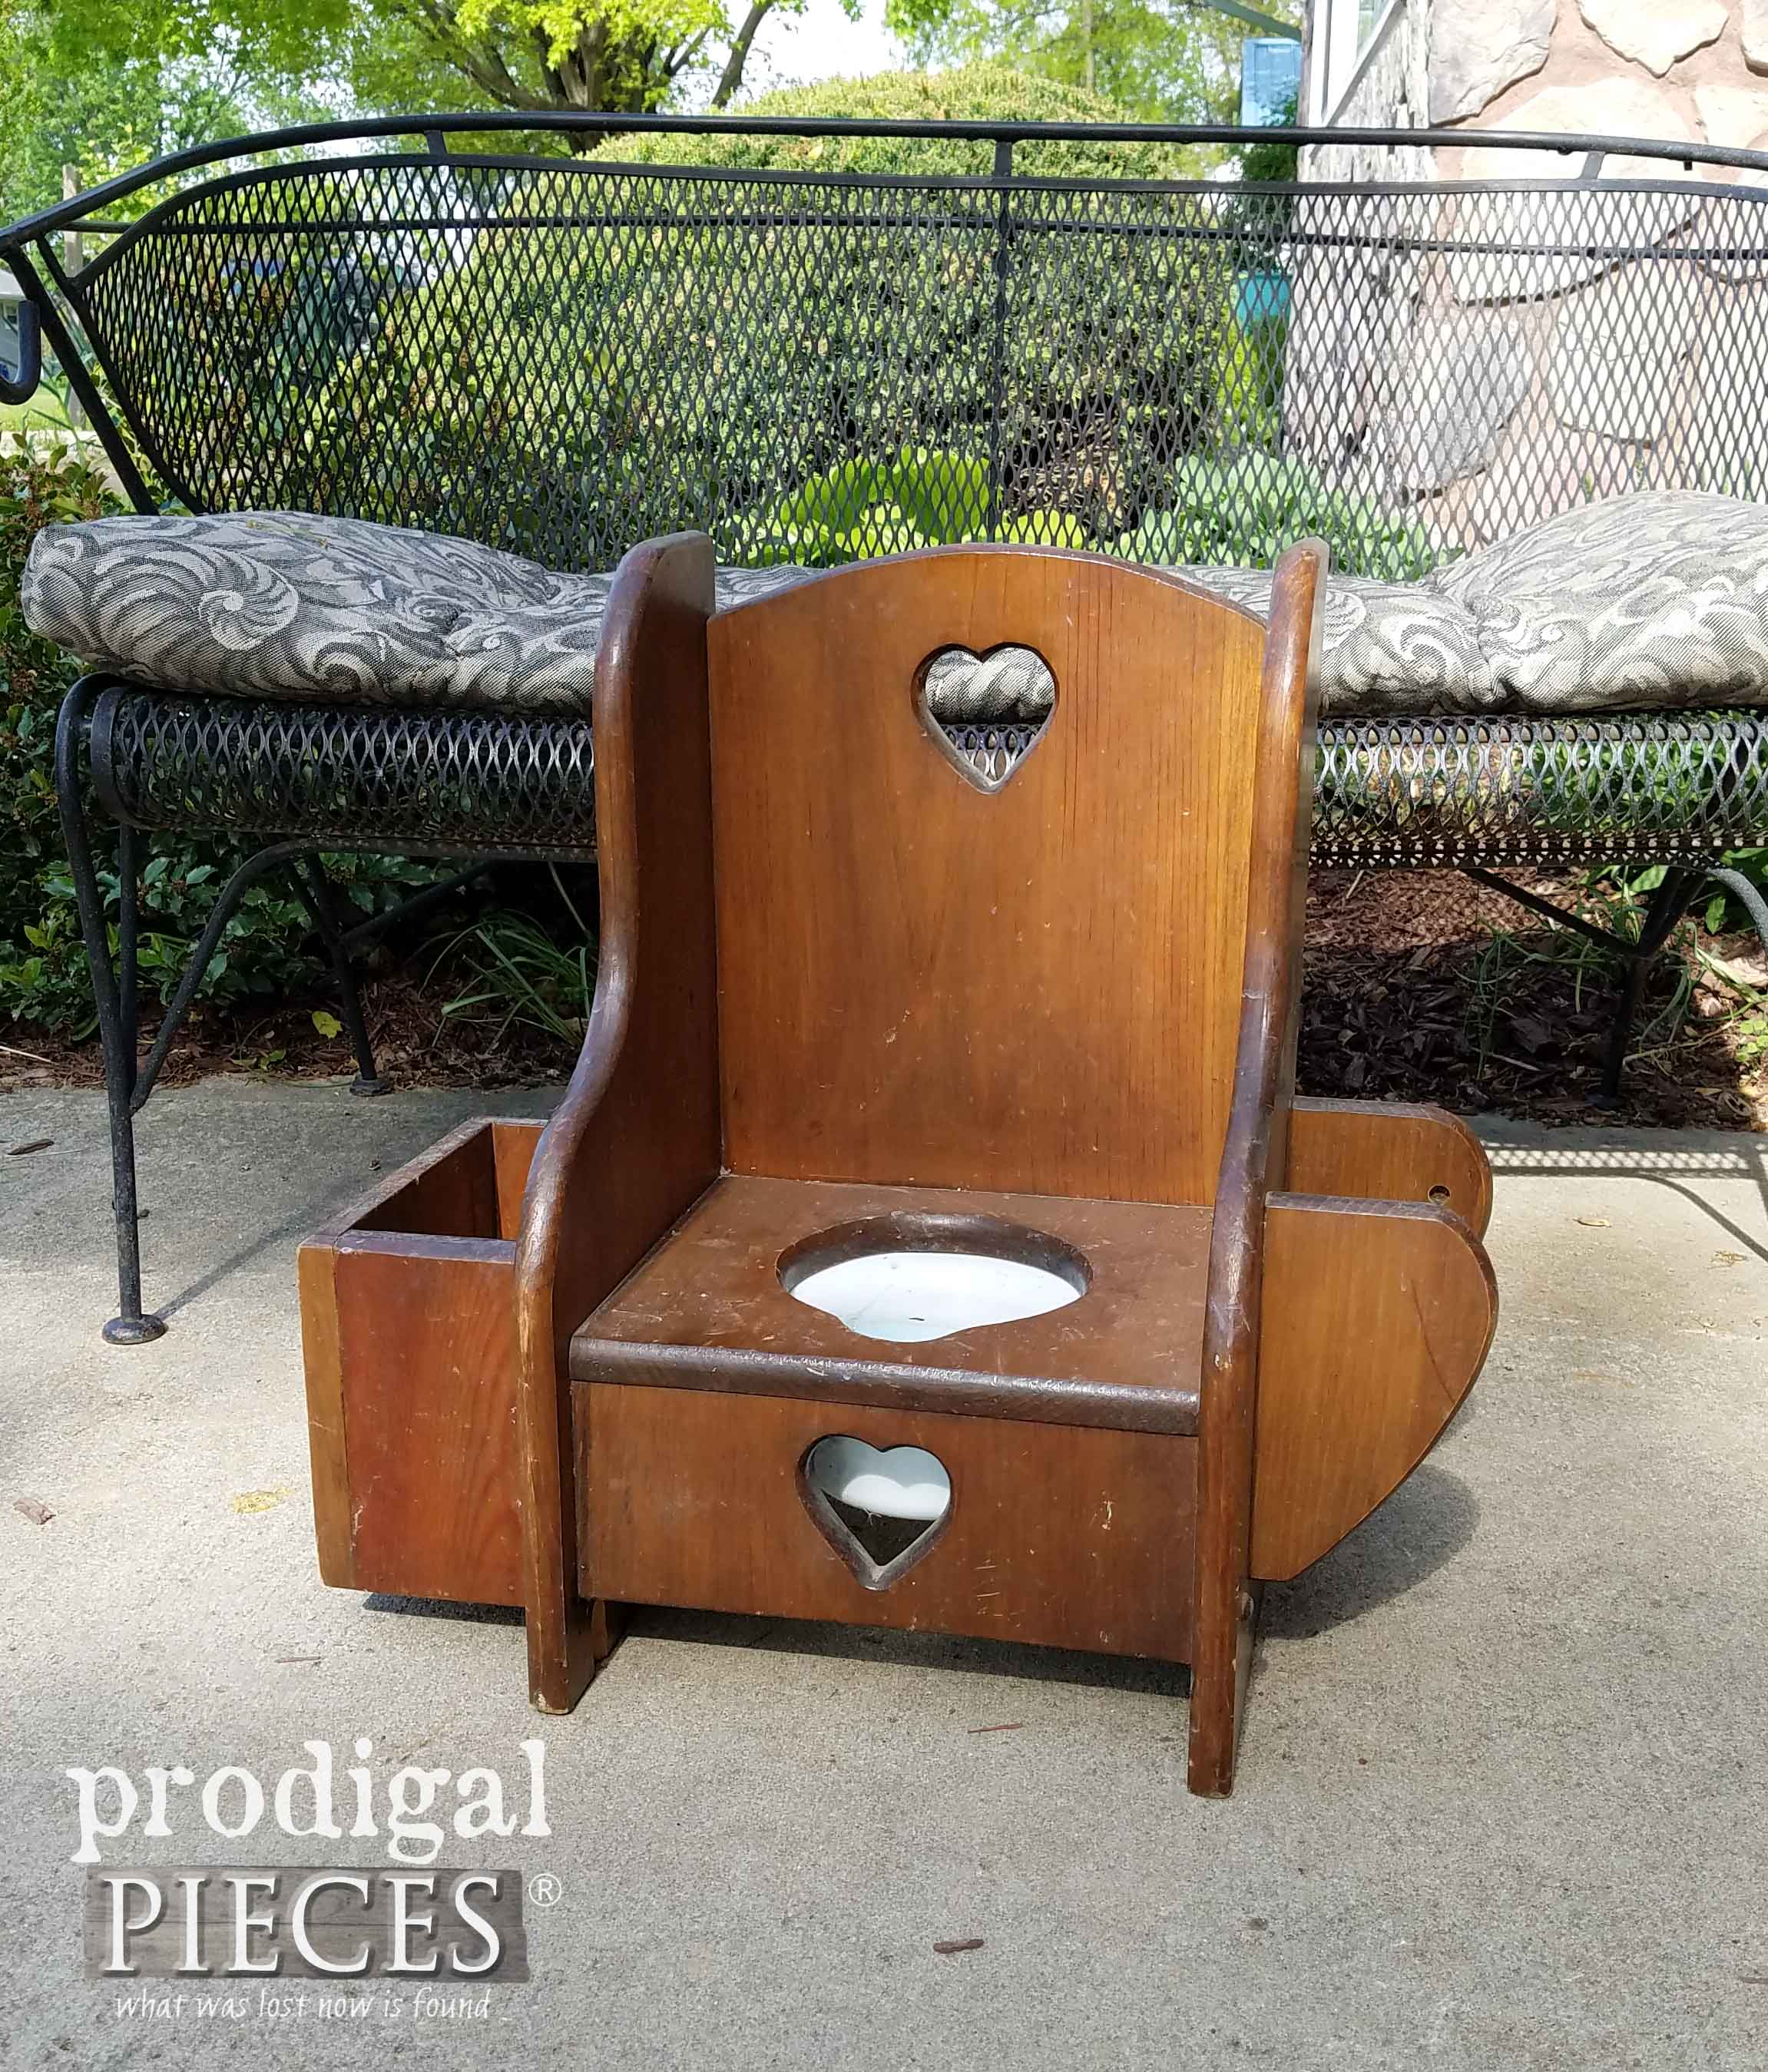 Vintage Potty Chair Found Curbside | Prodigal Pieces | prodigalpieces.com